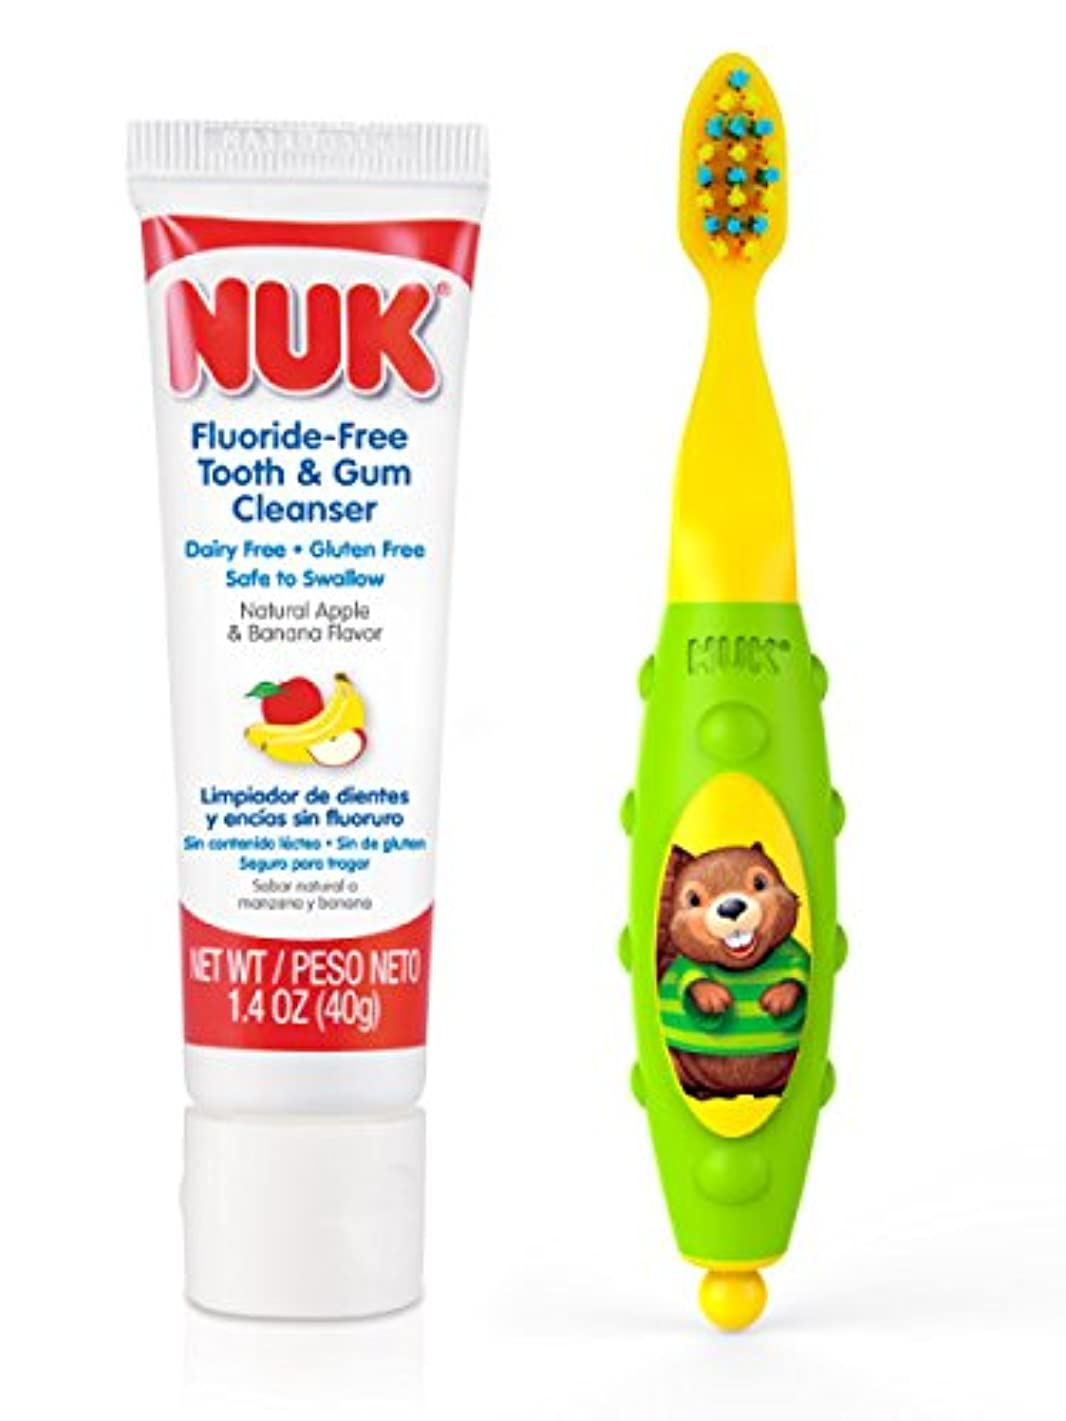 NUK Toddler Tooth and Gum Cleanser, 1.4 Ounce, (Colors May Vary) by NUK [並行輸入品]